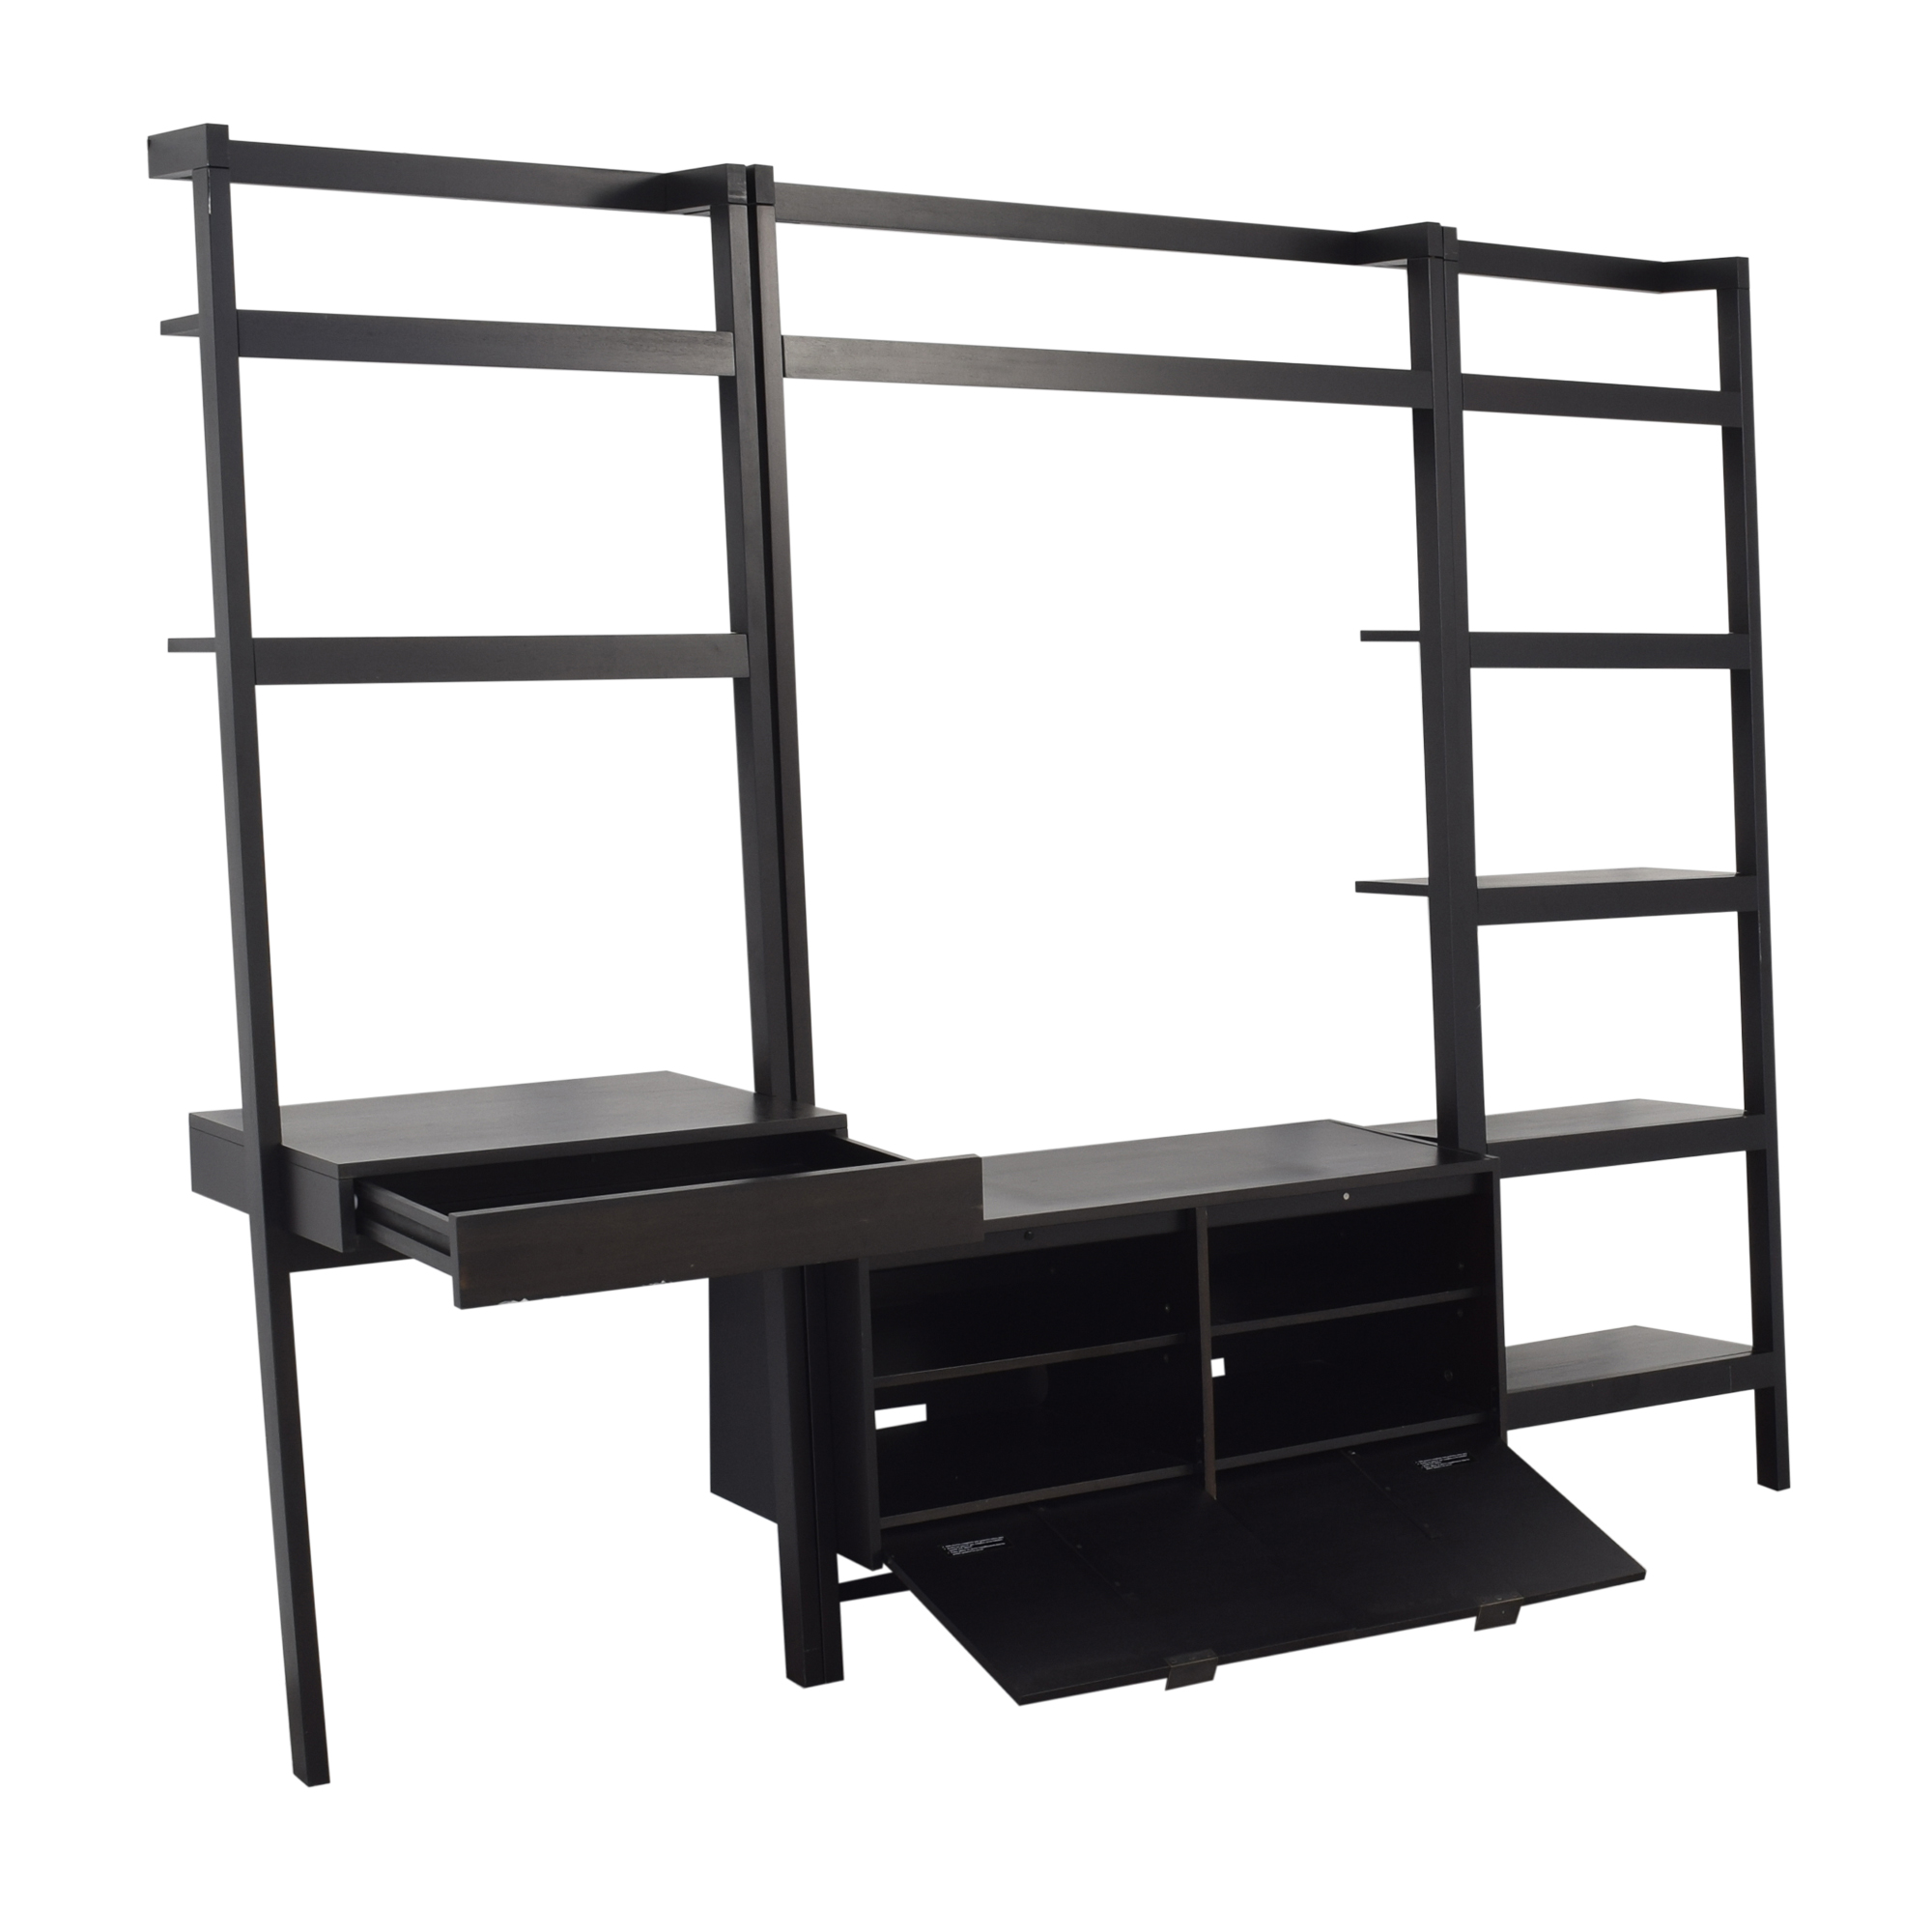 shop Crate & Barrel Sawyer Leaning Media Stand with Bookcases Crate & Barrel